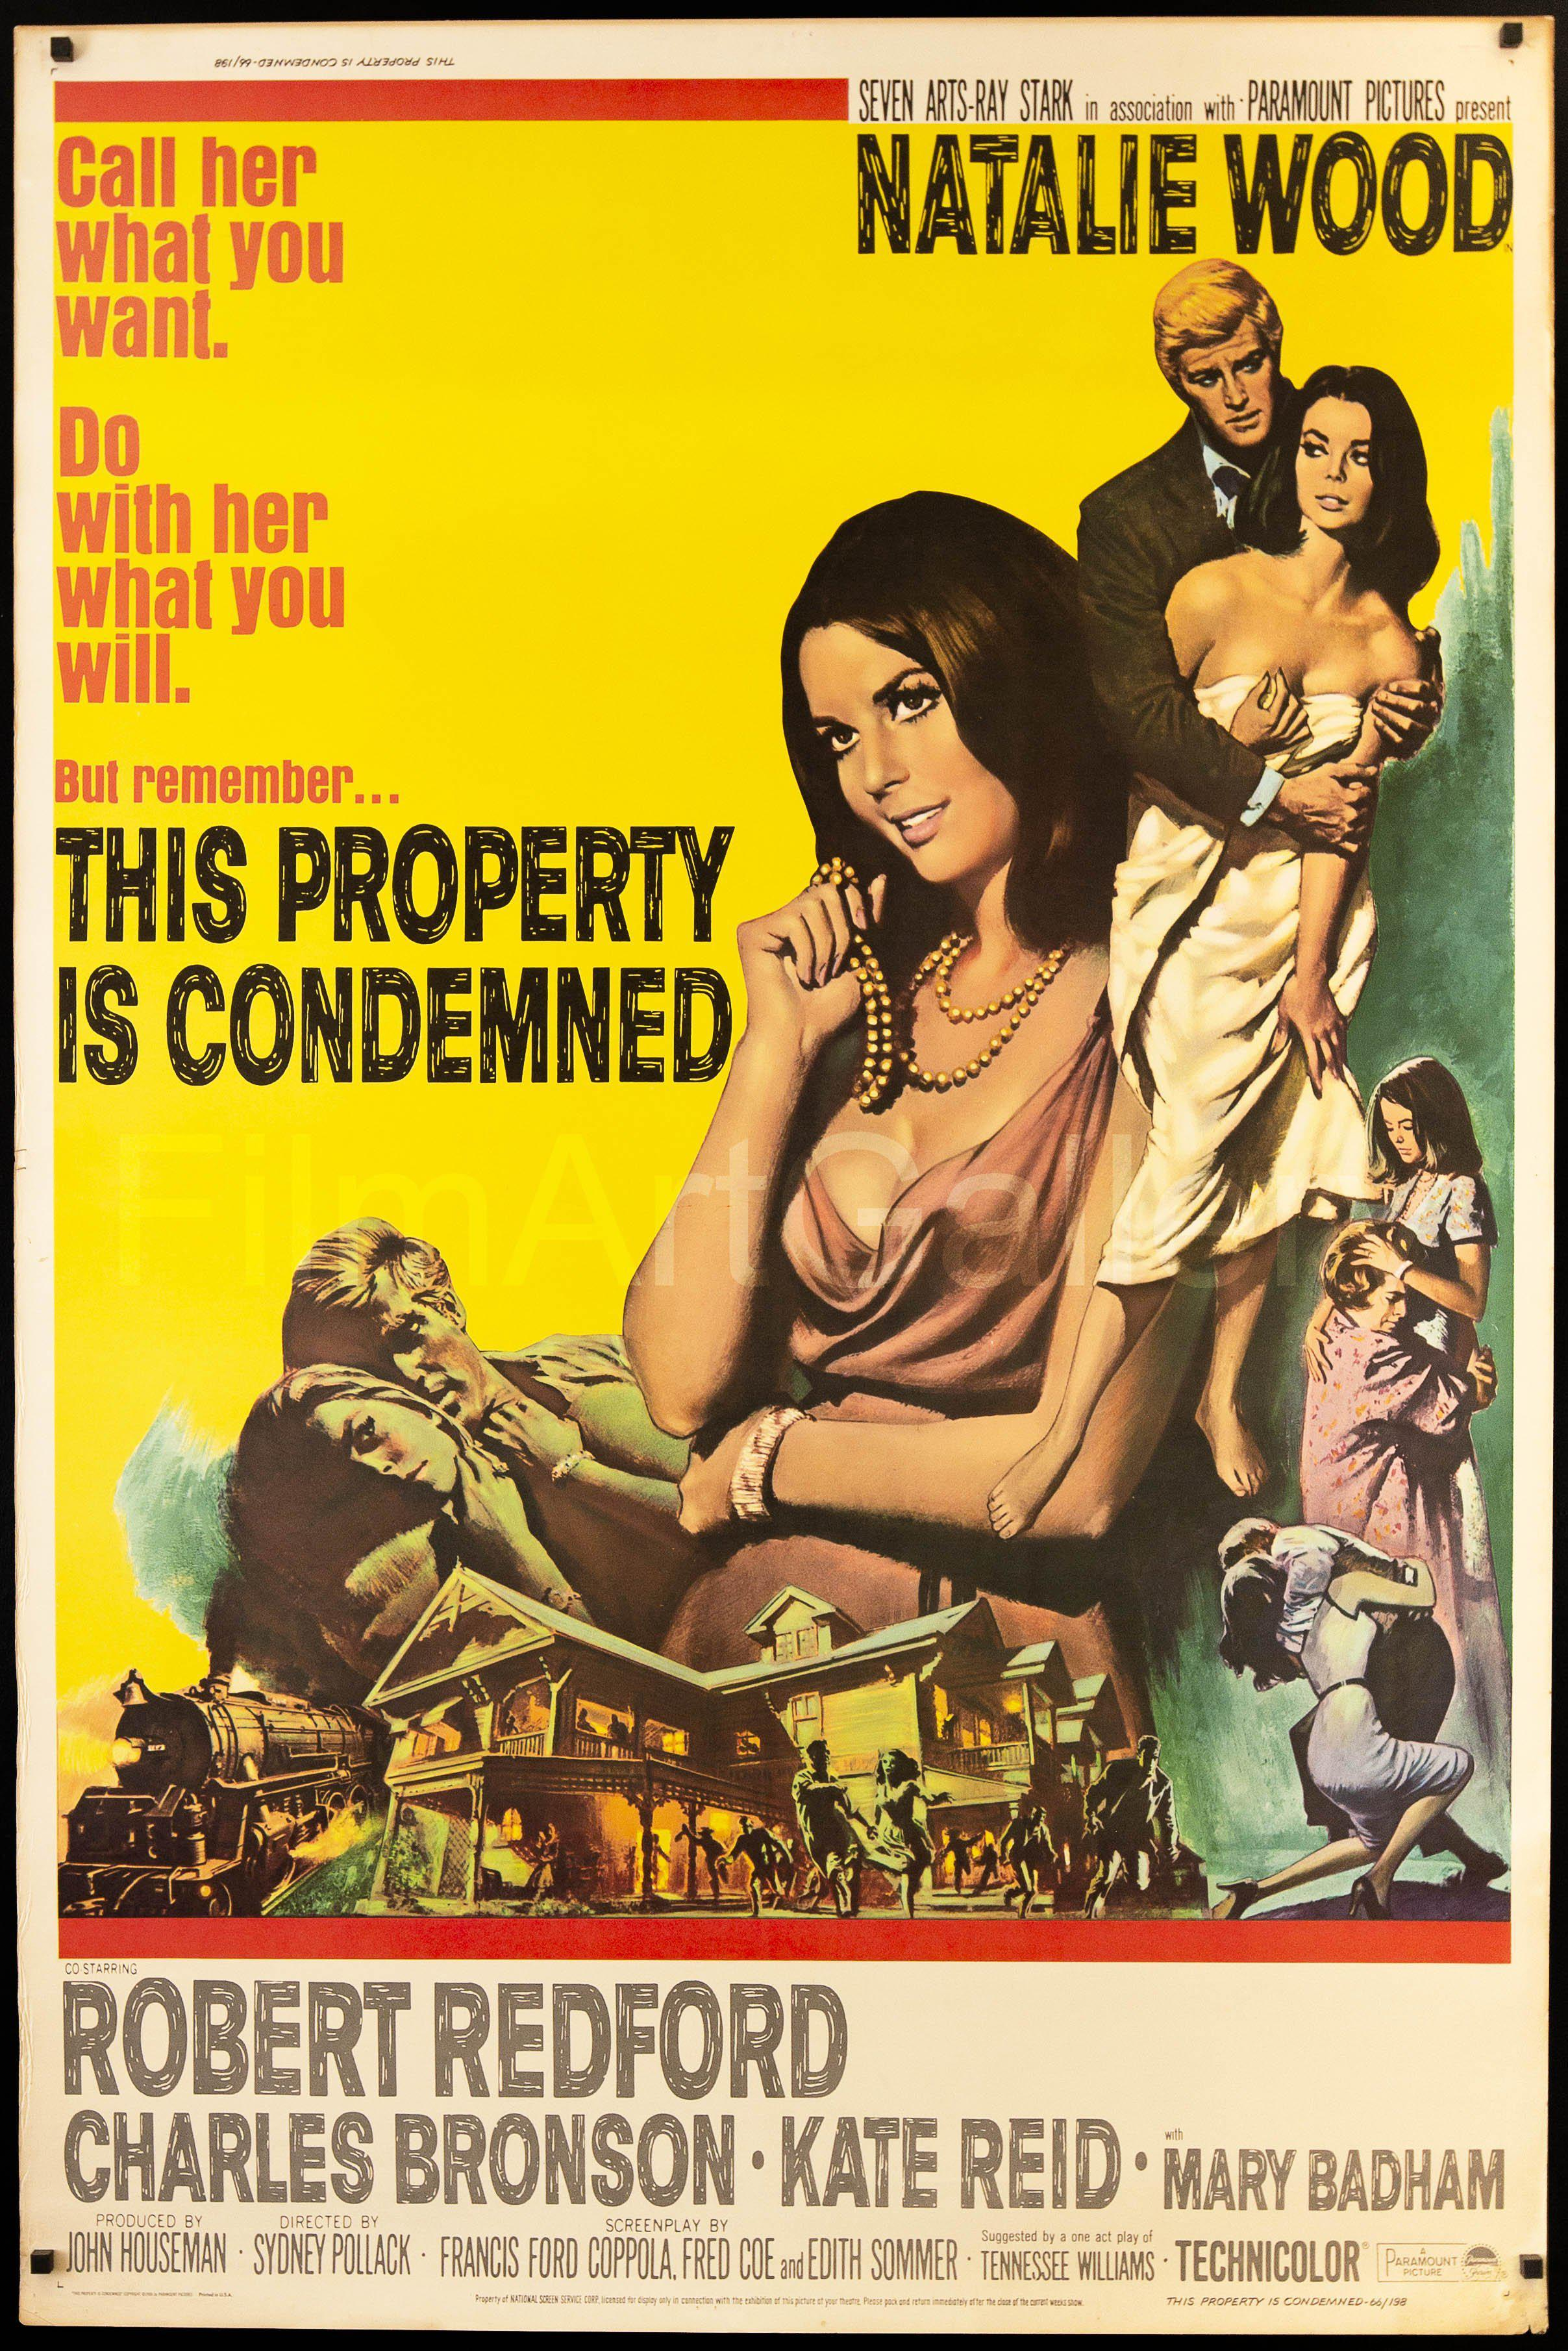 This Property Is Condemned Movie Poster | 40x60 Original Vintage Movie  Poster